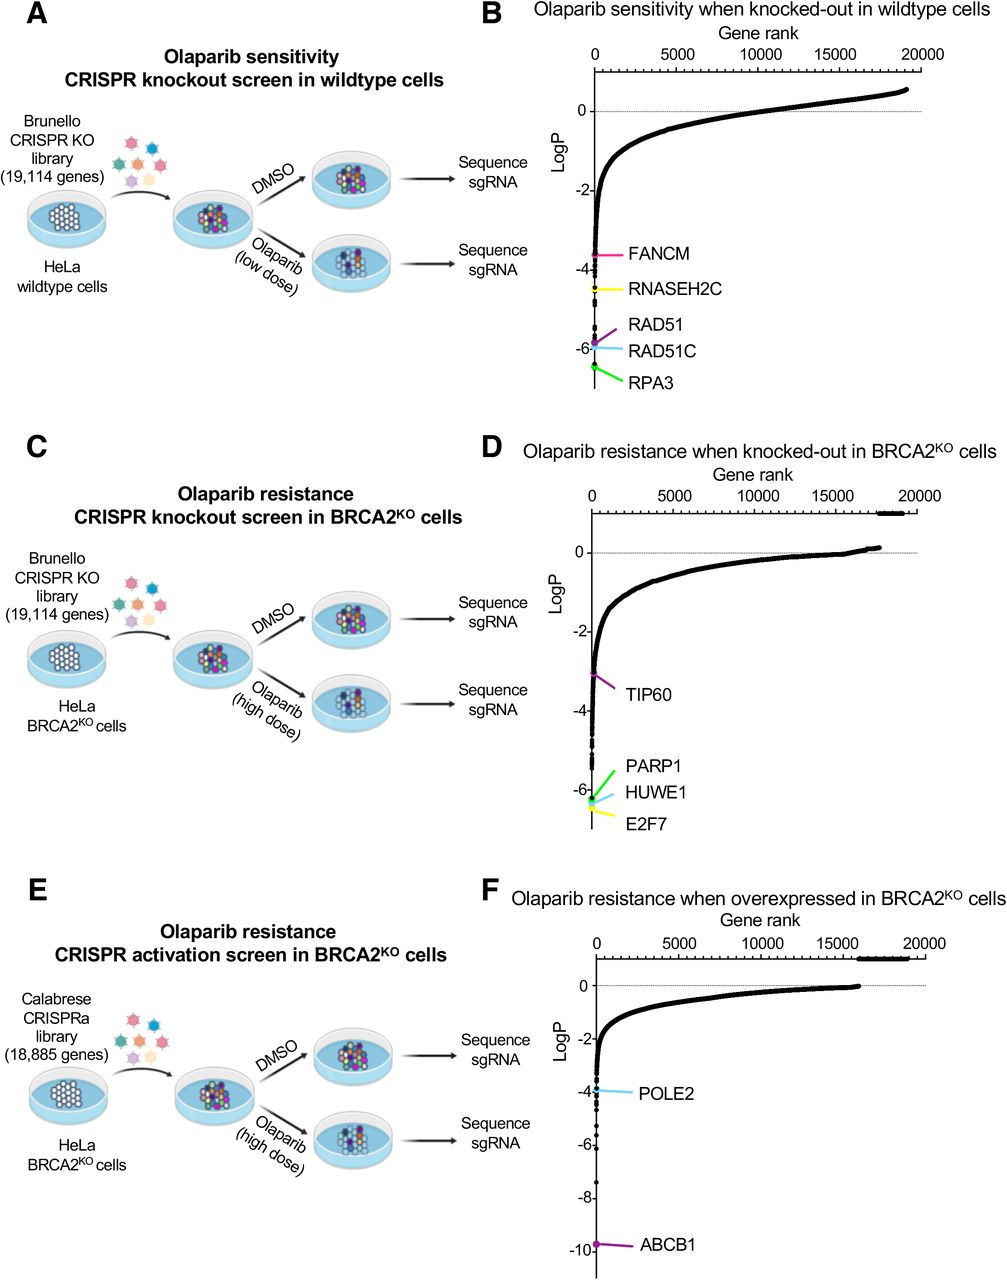 Complementary CRISPR knockout and activation screens identify determinants of PARPi response in parental or BRCA2-knockout HeLa cells. (A) Schematic representation of the CRISPR knockout screen for olaparib sensitivity in wildtype cells. HeLa cells were infected with the Brunello CRISPR knockout library. Infected cells were divided into PARP inhibitor (olaparib) -treated or control (DMSO) arms. Genomic DNA was extracted from cells surviving the drug treatment and single-guide RNAs (sgRNAs) were identified using Illumina sequencing. (B) Scatterplot showing the results of this screen. Each gene targeted by the library was ranked according to P-values calculated using RSA analysis. The P-values are based on the fold change of the guides targeting each gene between the olaparib- and DMSO-treated conditions. Several biologically interesting hits are highlighted. (C) Schematic representation of the CRISPR knockout screen for olaparib resistance in BRCA2 KO cells. HeLa BRCA2 KO cells were infected with the Brunello CRISPR knockout library. Infected cells were divided into PARP inhibitor (olaparib) -treated or control (DMSO) arms. (D) Scatterplot showing the results of this screen, with several biologically interesting hits highlighted. (E) Schematic representation of the CRISPR activation screen for olaparib resistance in BRCA2 KO cells. HeLa BRCA2 KO cells stably expressing the modified dCas9 enzyme were infected with the Calabrese CRISPR activation library. Infected cells were divided into PARP inhibitor (olaparib) -treated or control (DMSO) arms. (F) Scatterplot showing the results of this screen, with several biologically interesting hits highlighted.